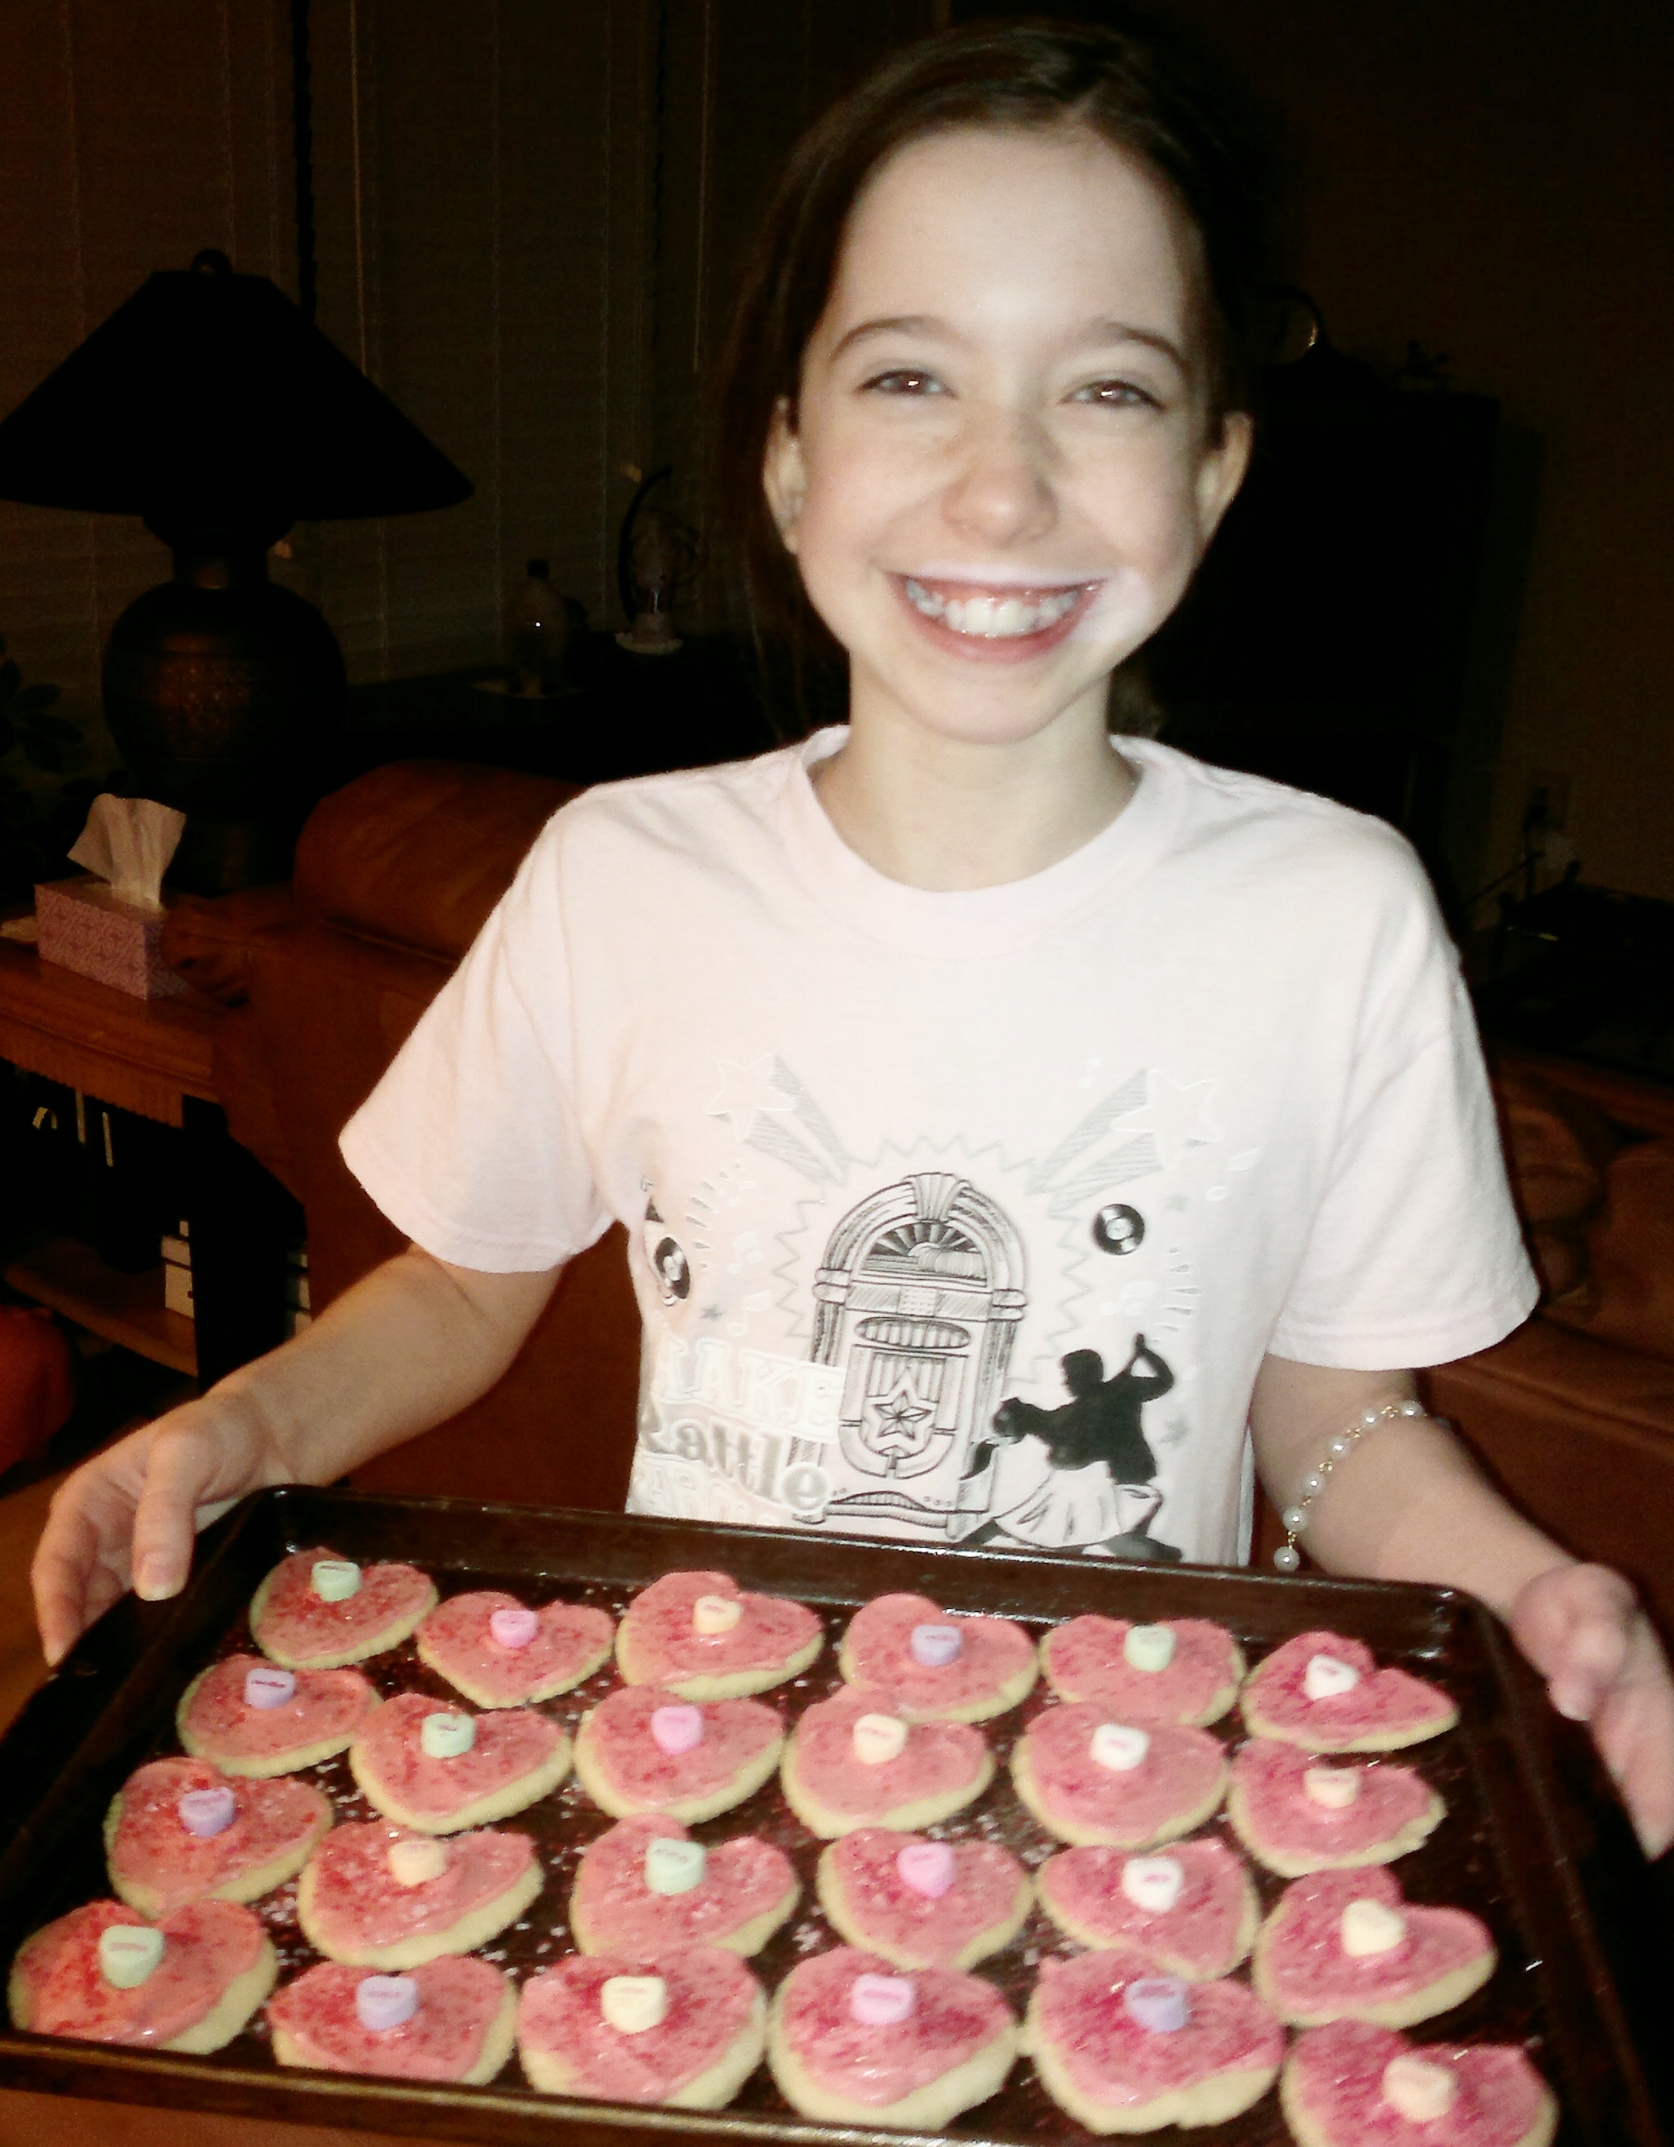 Bella with cookies she helped make for the staff at the nursing home - Feb 2014